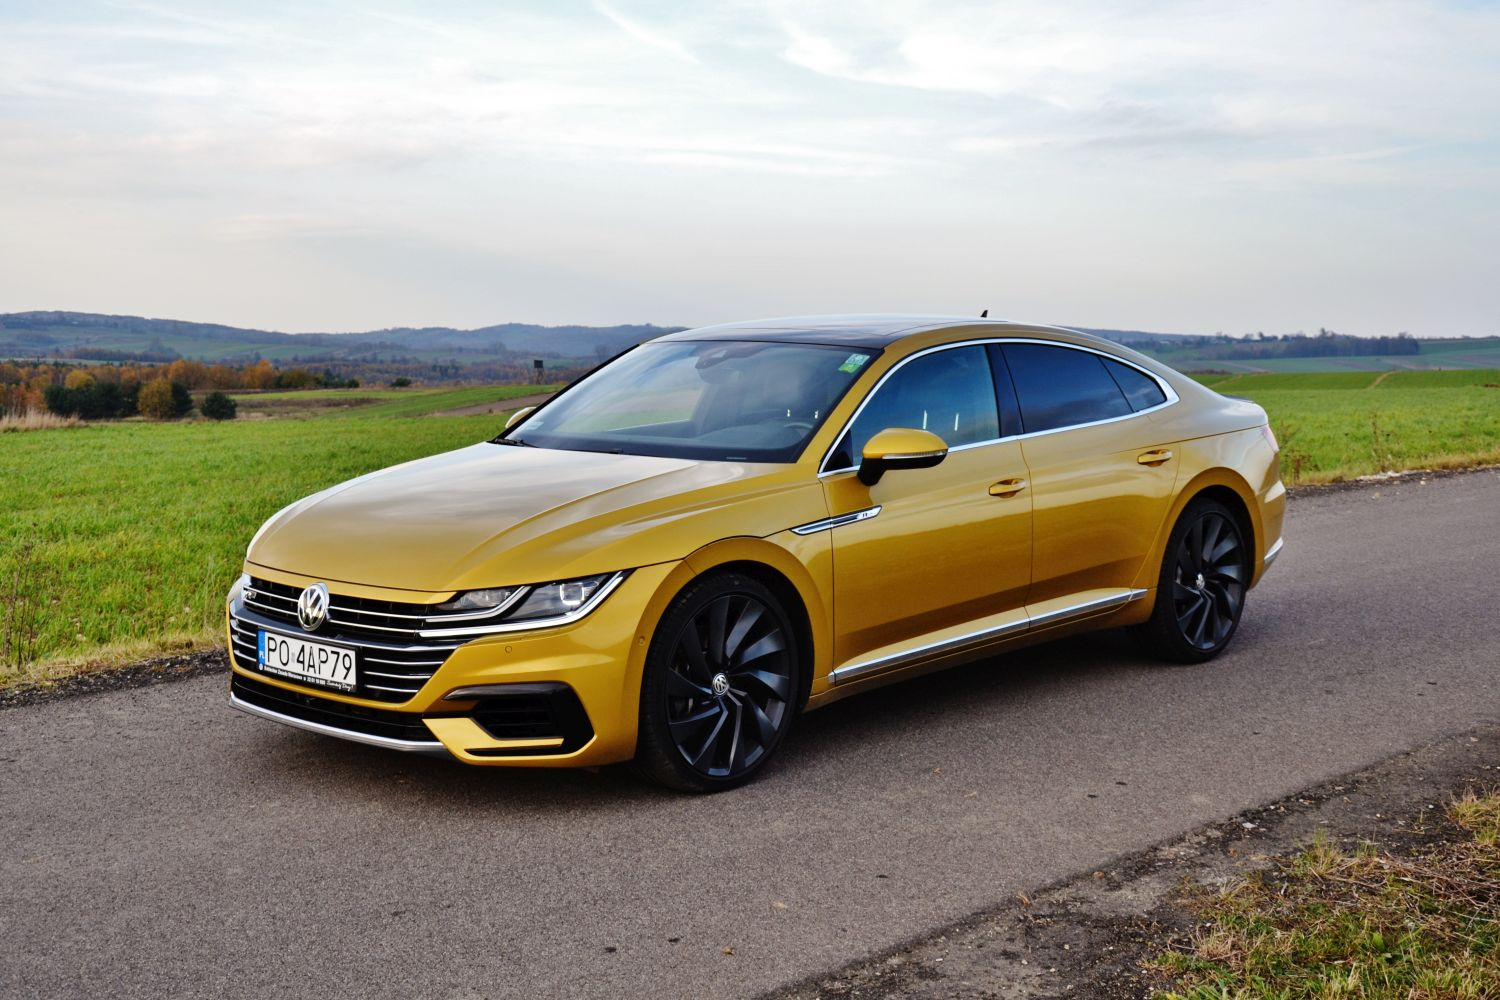 volkswagen arteon 2 0 tdi bi turbo dsg 4motion r line nareszcie namasce. Black Bedroom Furniture Sets. Home Design Ideas